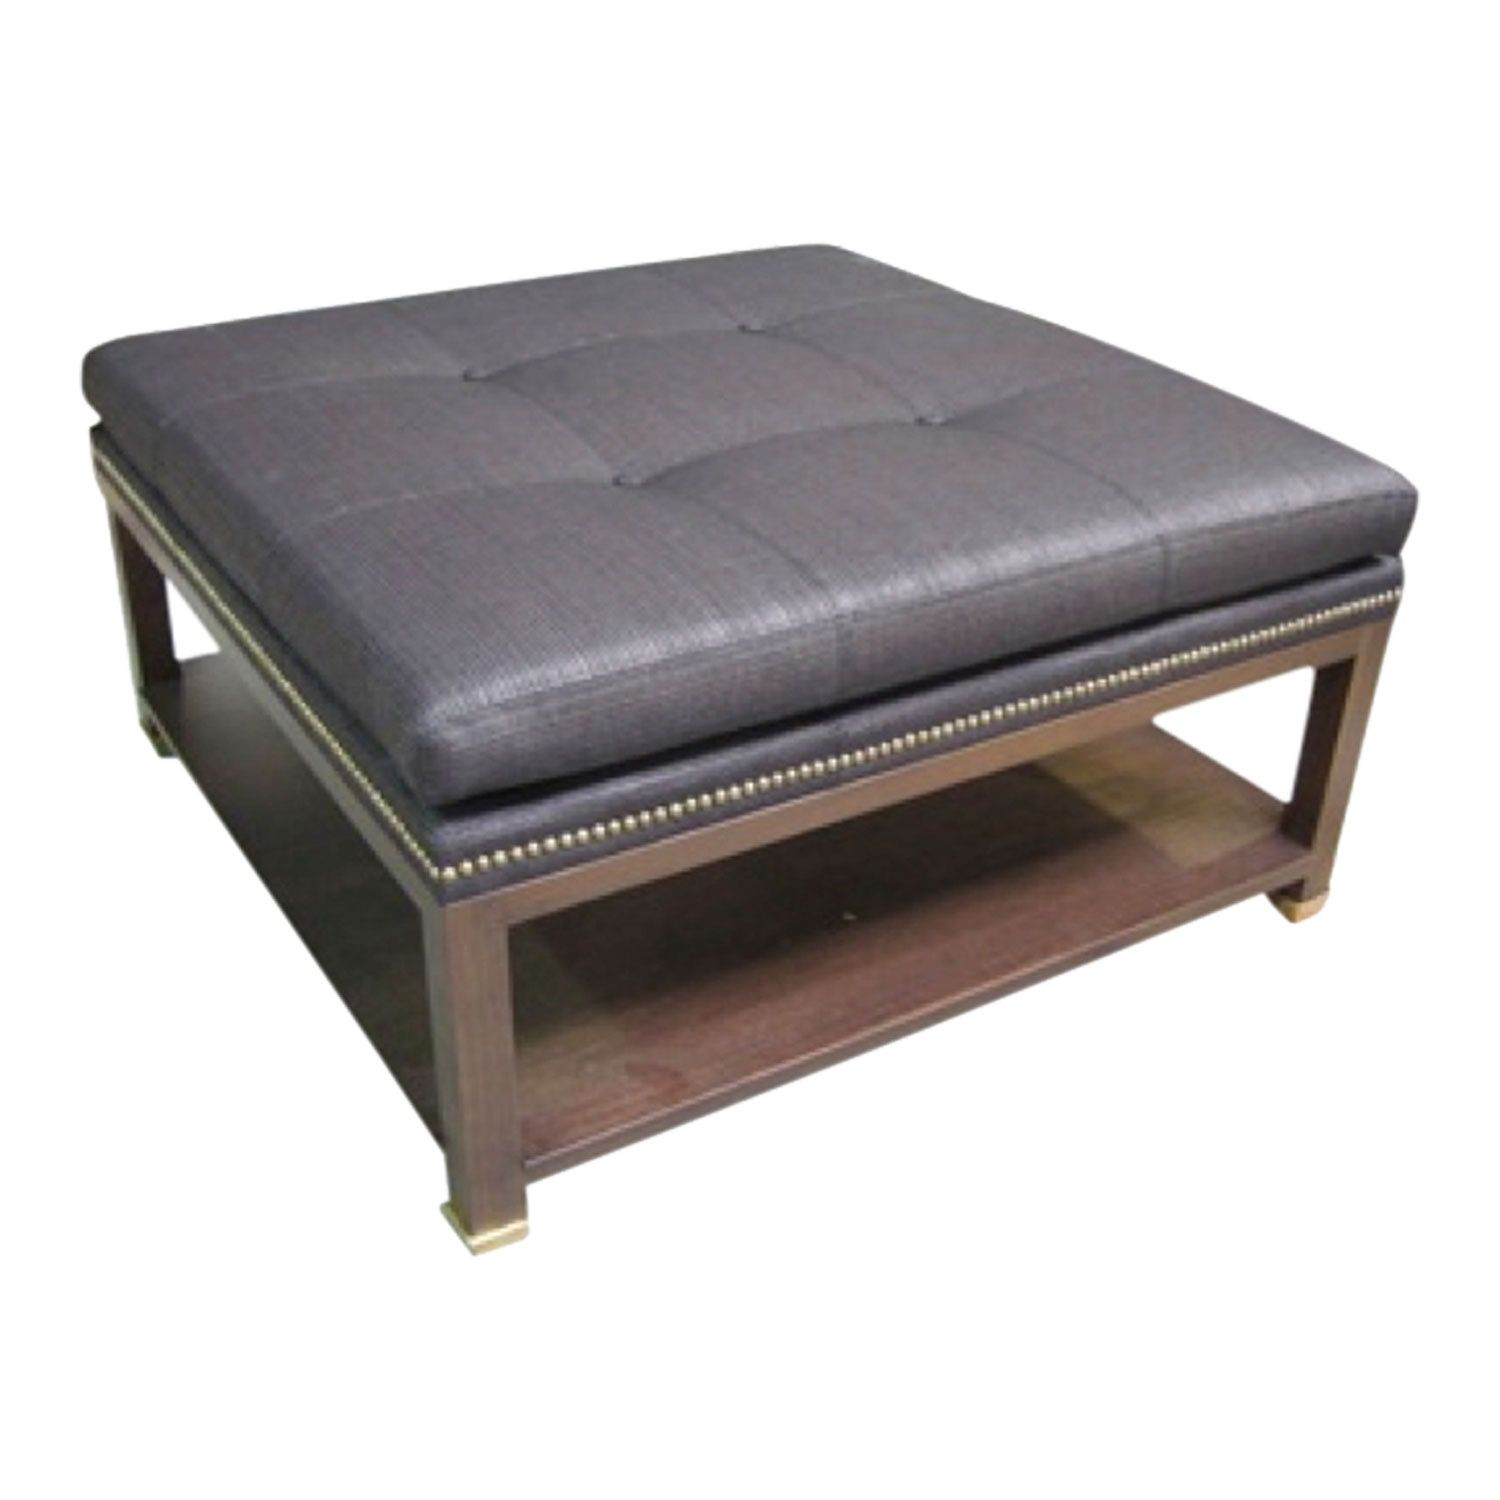 Buy Woodside Ottoman By Steven Gambrel   Made To Order Designer Furniture  From Dering